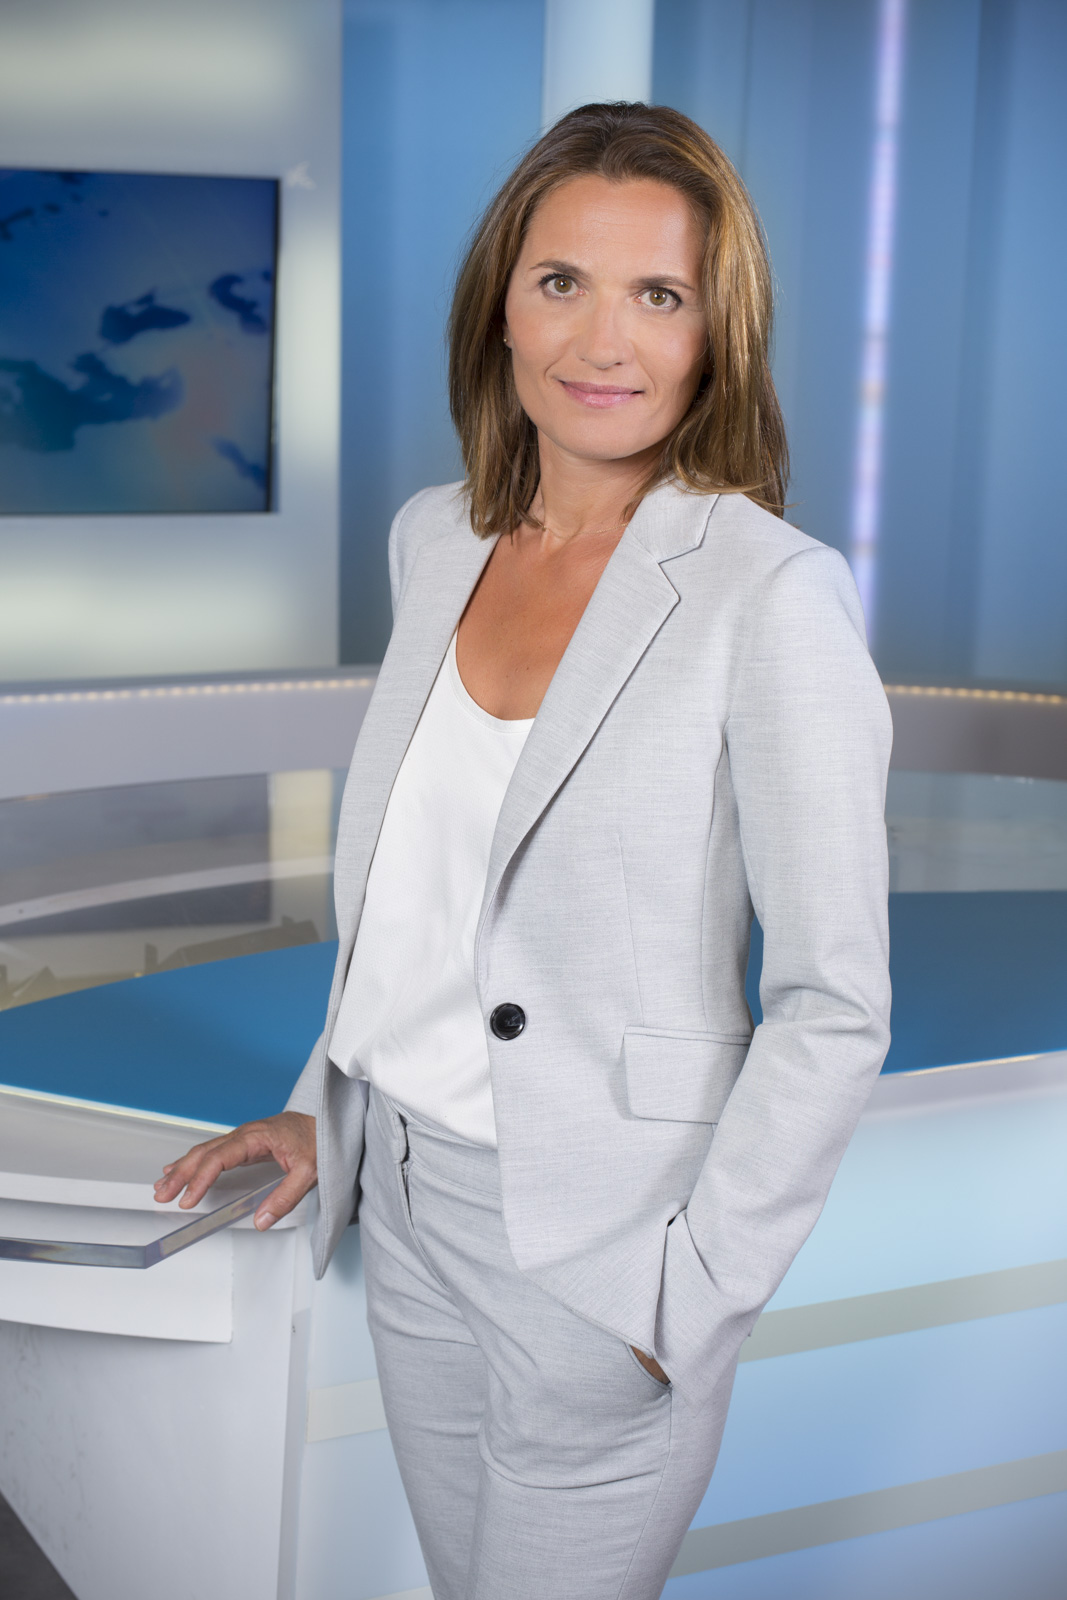 image Anne france pour thierry a2